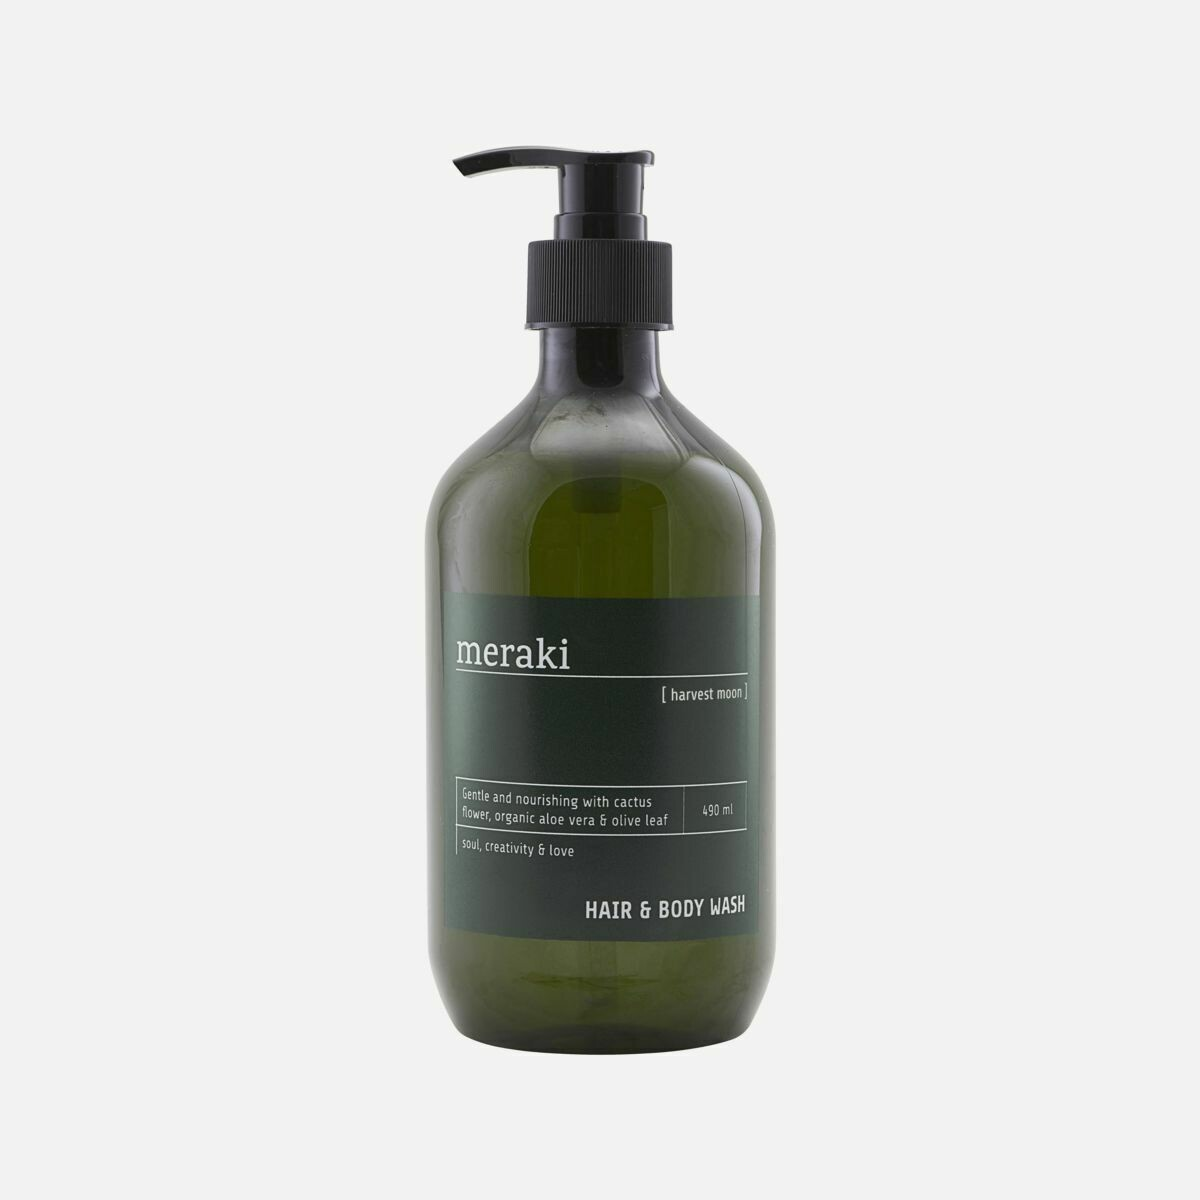 Hair & Body Wash, Harvest Moon, for men 490ml